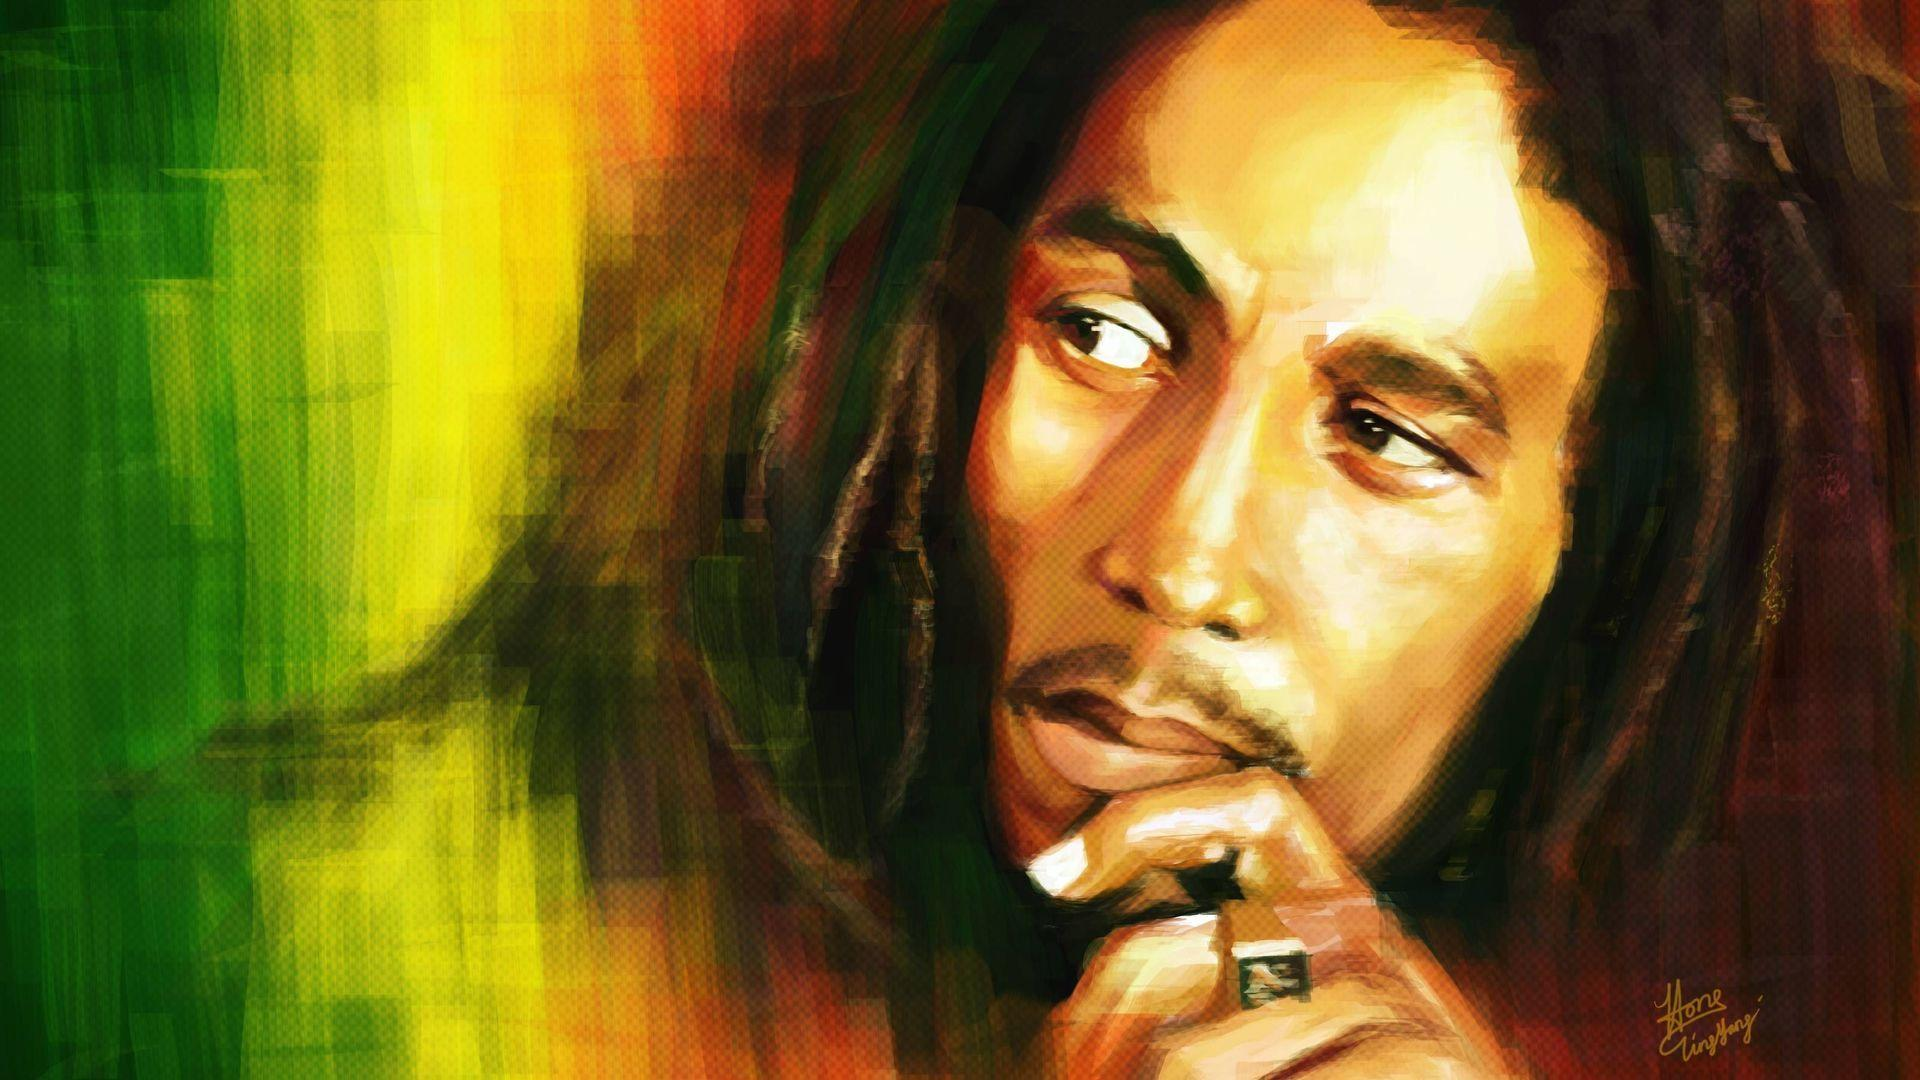 Bob Marley Hd Wallpapers 1080p Wallpaper Cave